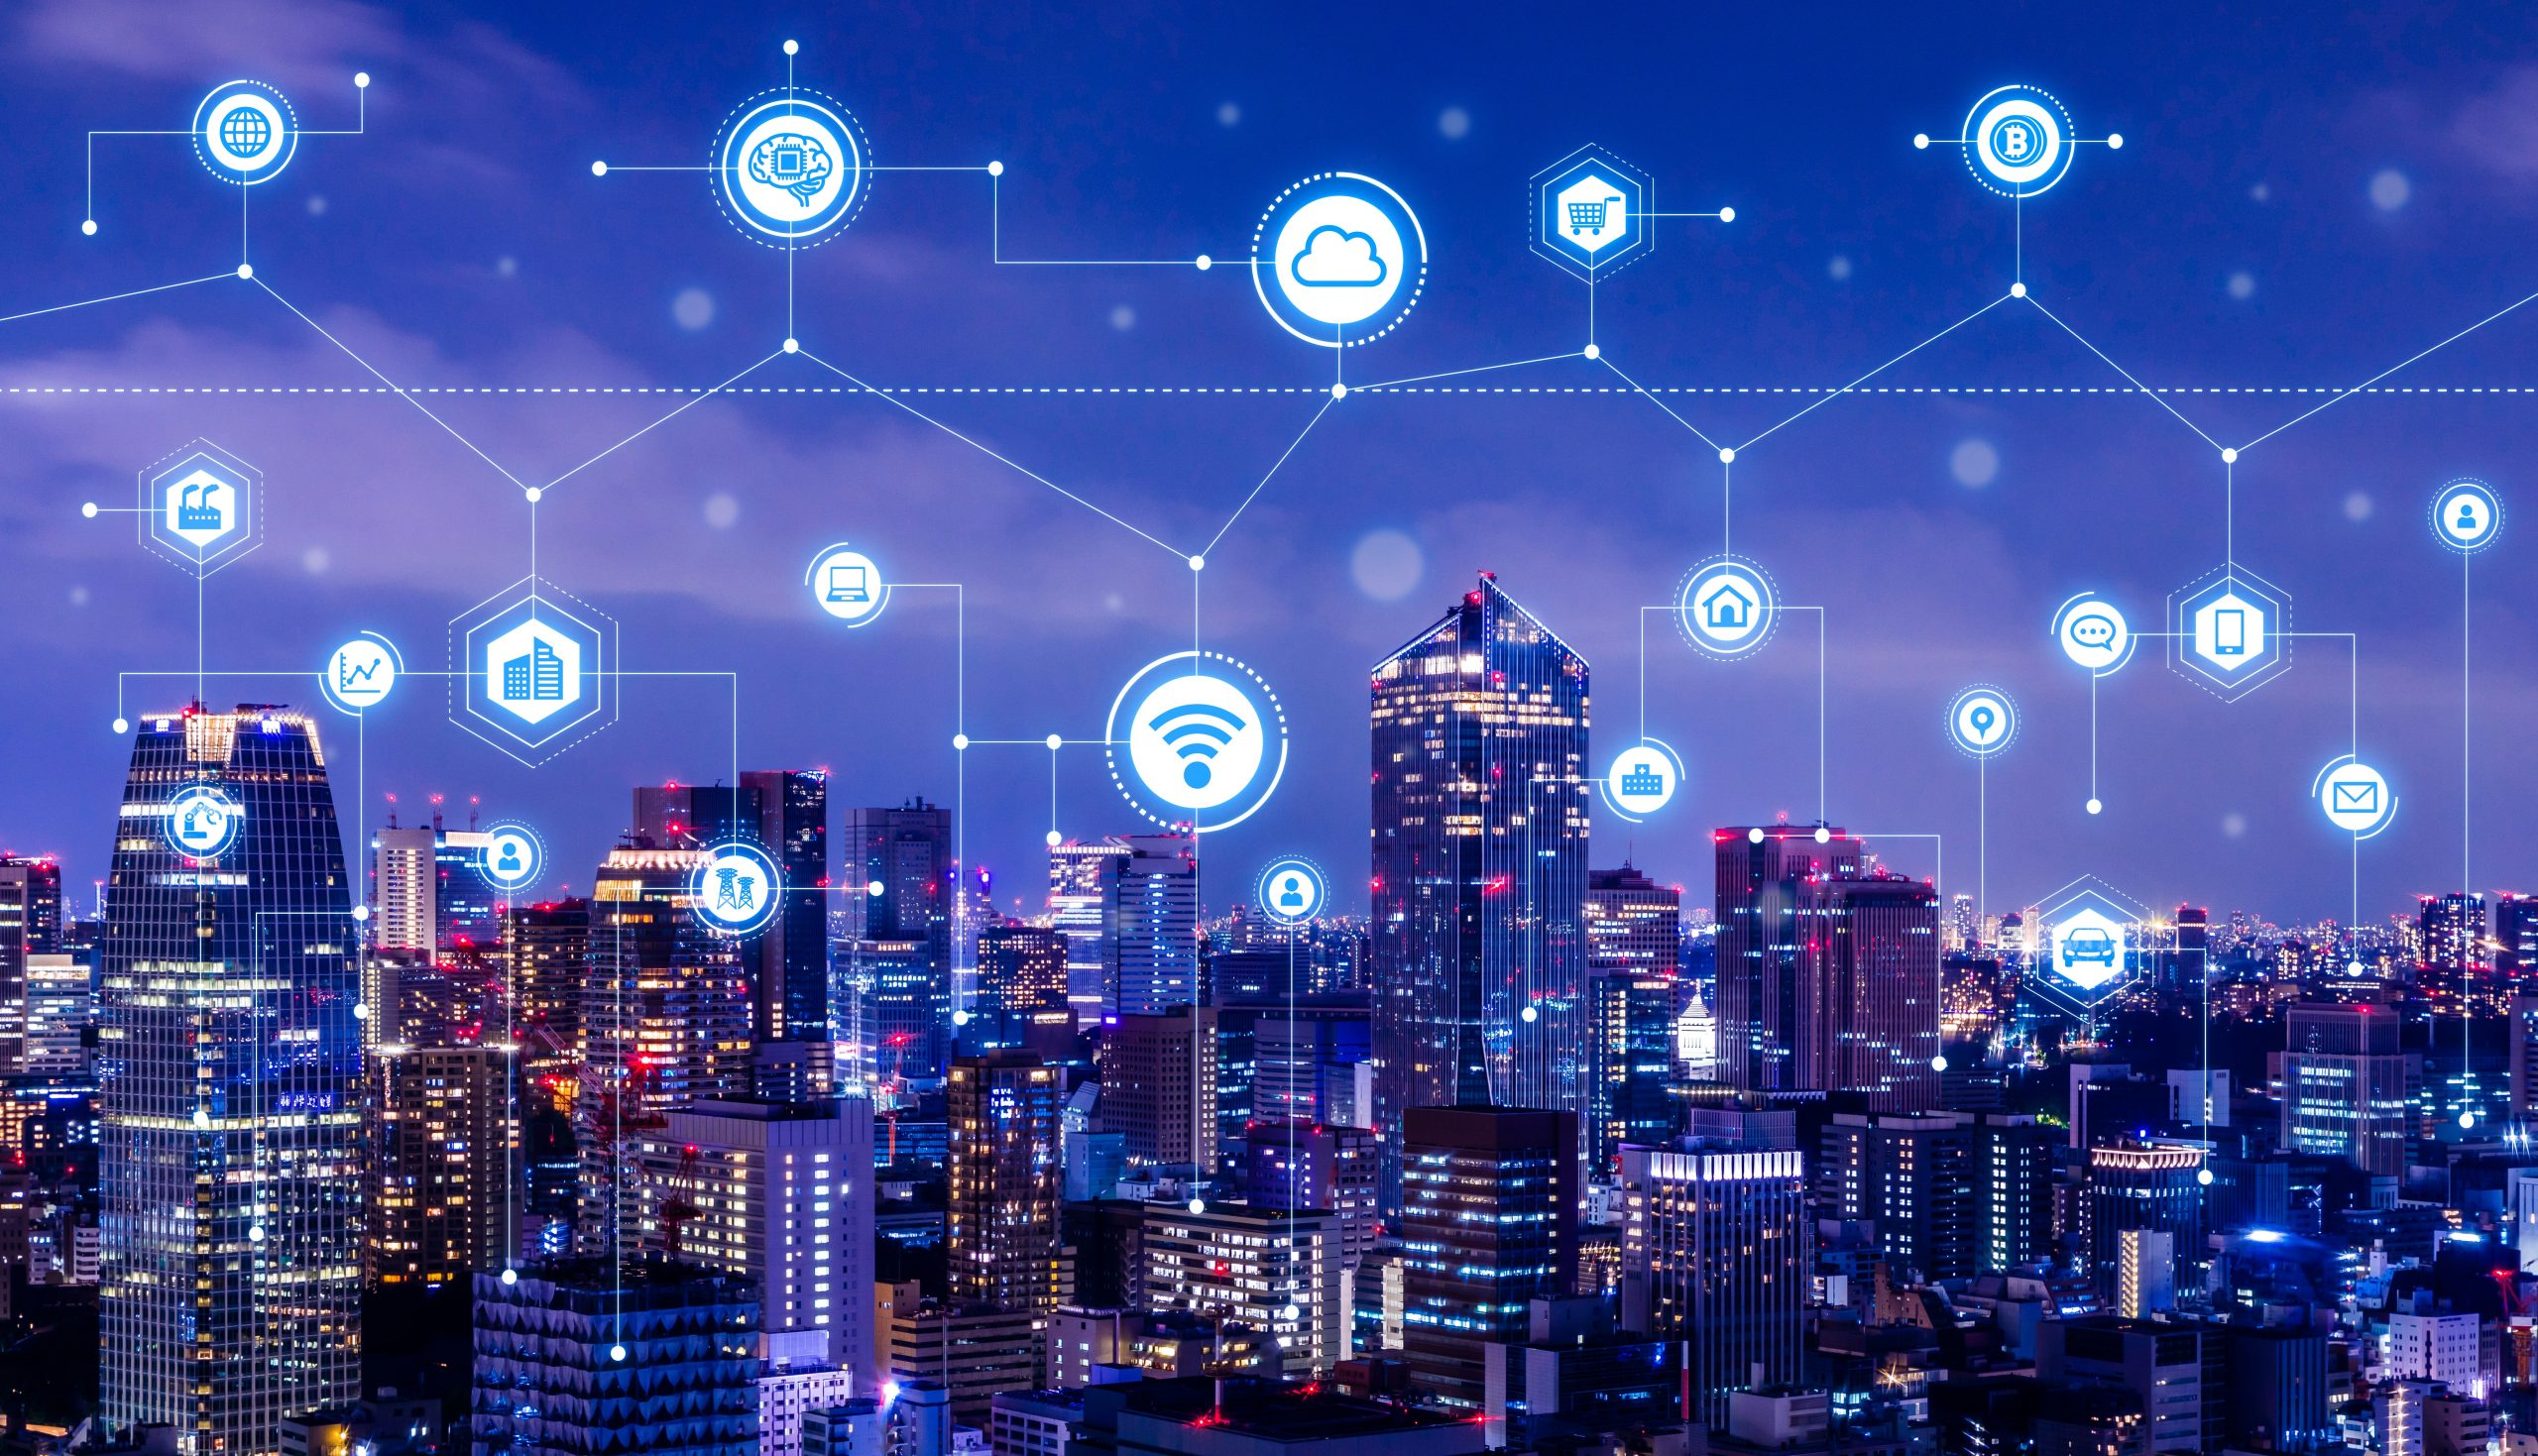 IoT Device Security Concerns Could Limit IoT Growth